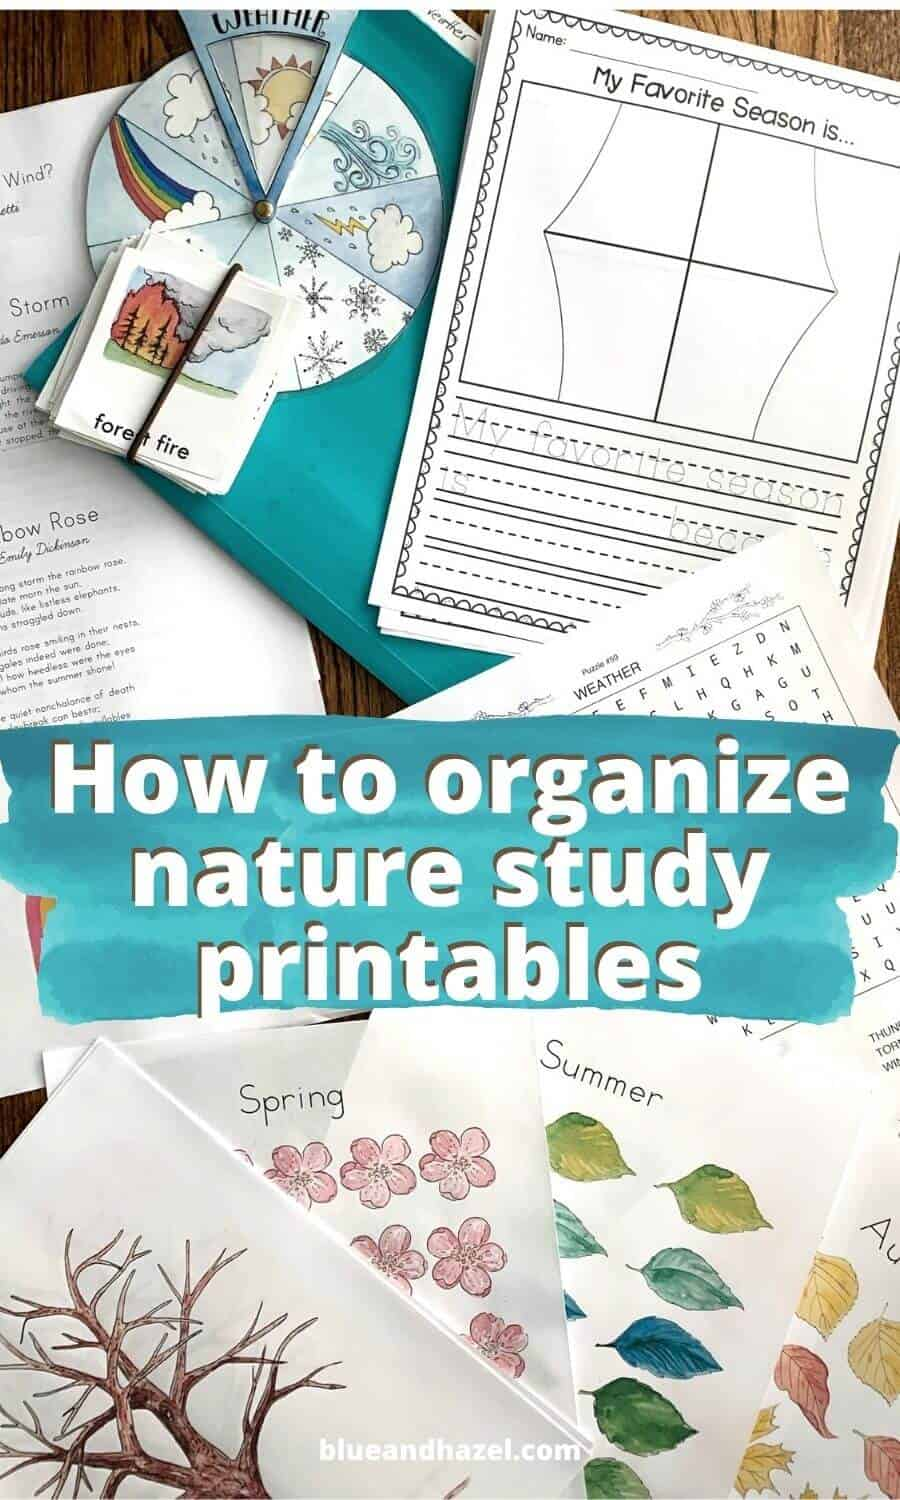 Weather Unit Printables organized using a filing system for nature study units